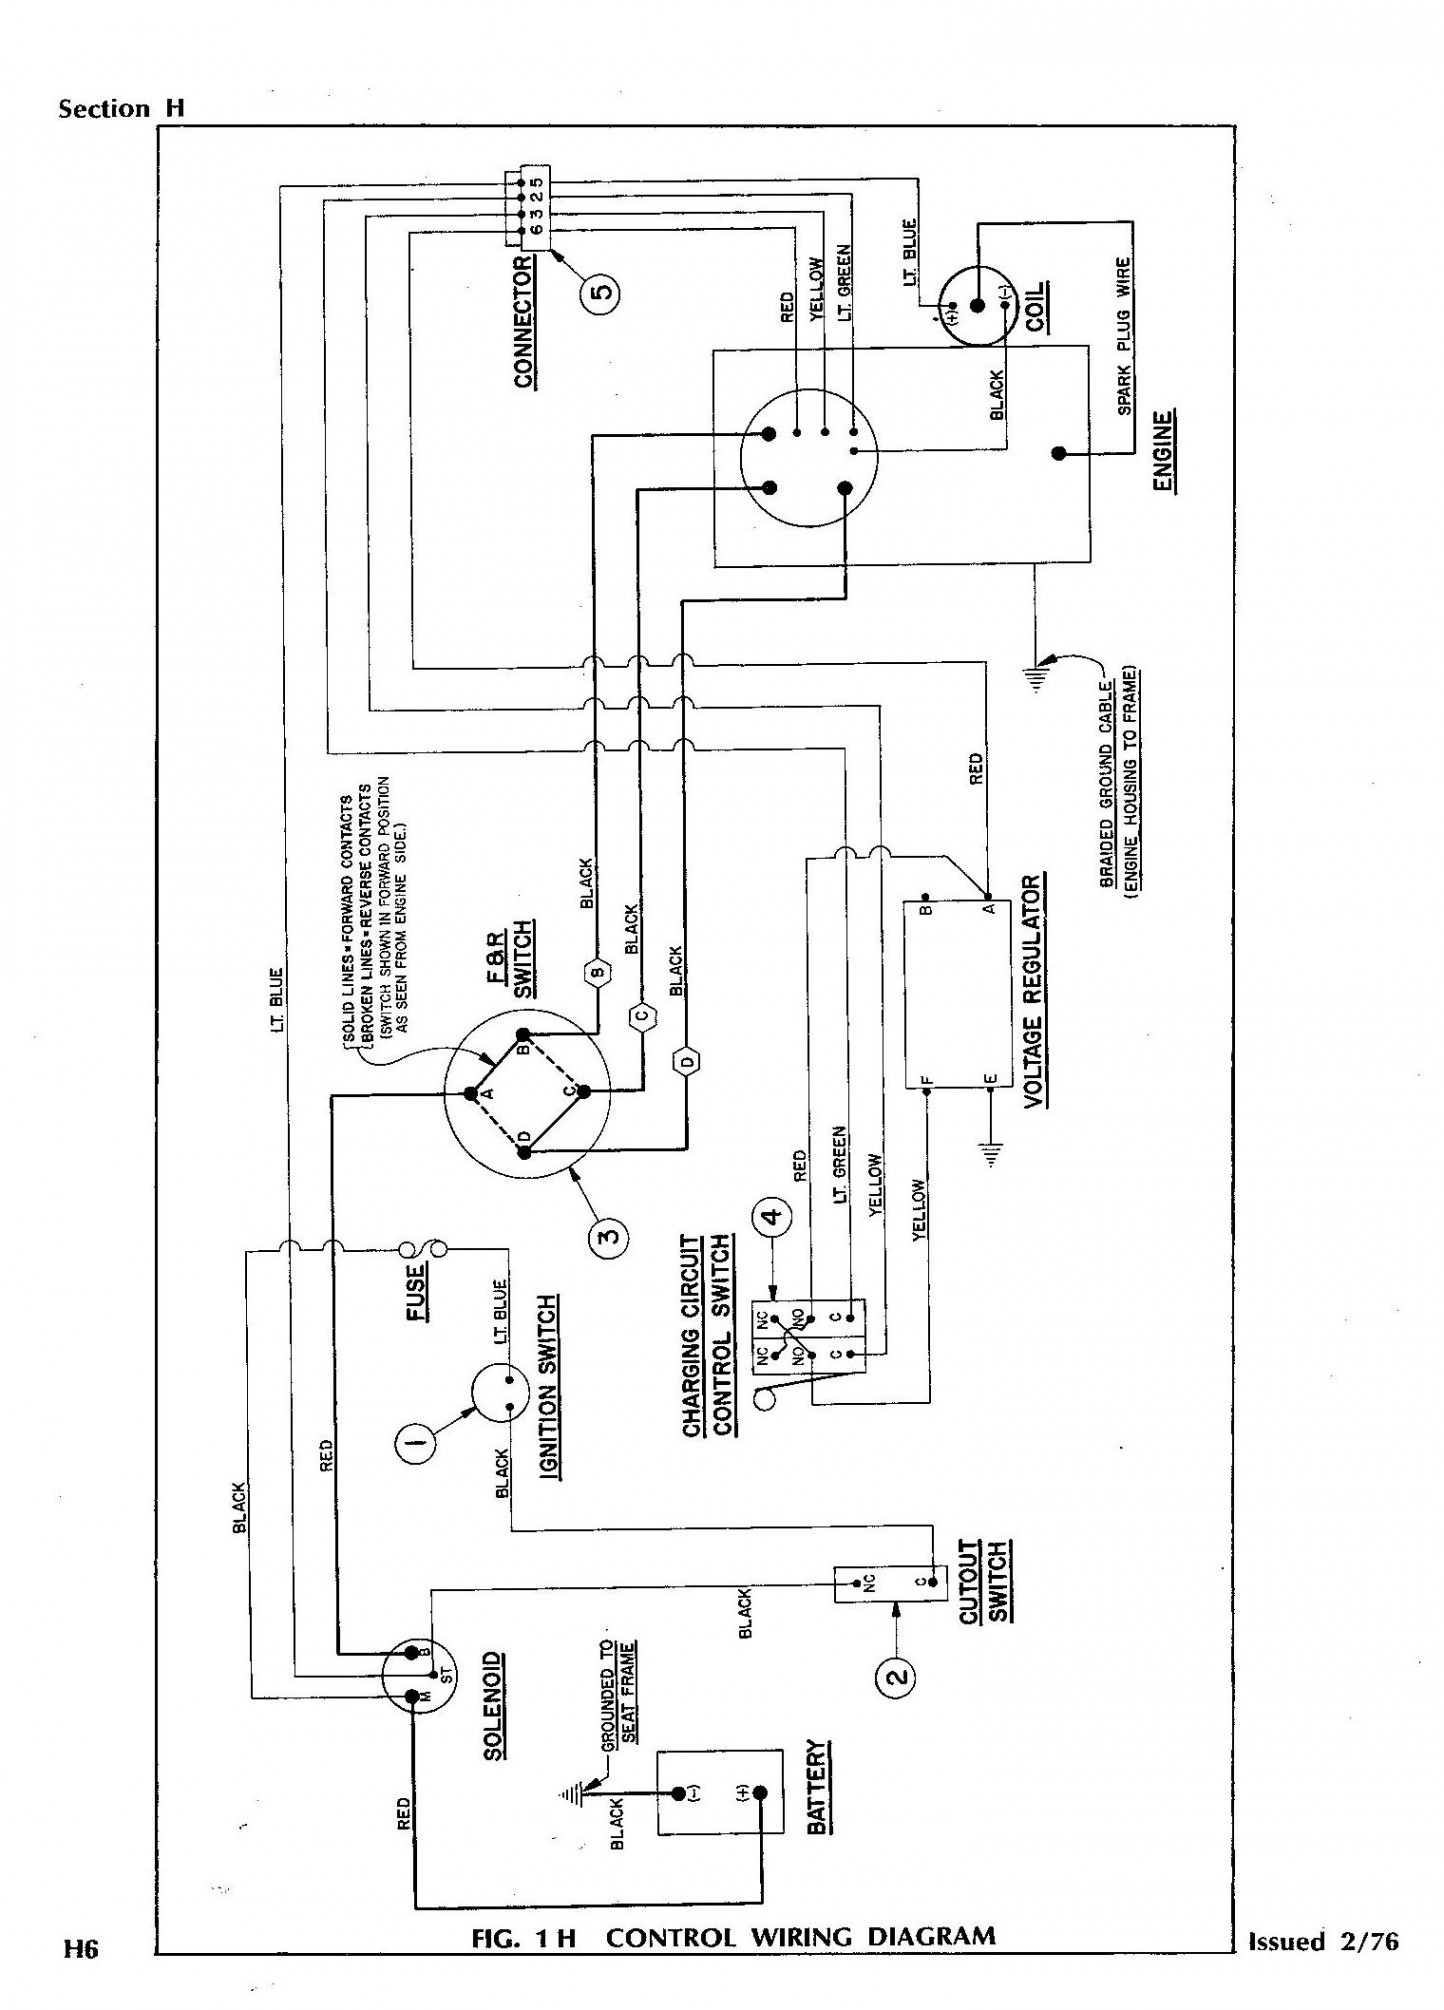 1988 Ezgo Wiring Diagram Wiring Diagram Instruct Instruct Cfcarsnoleggio It